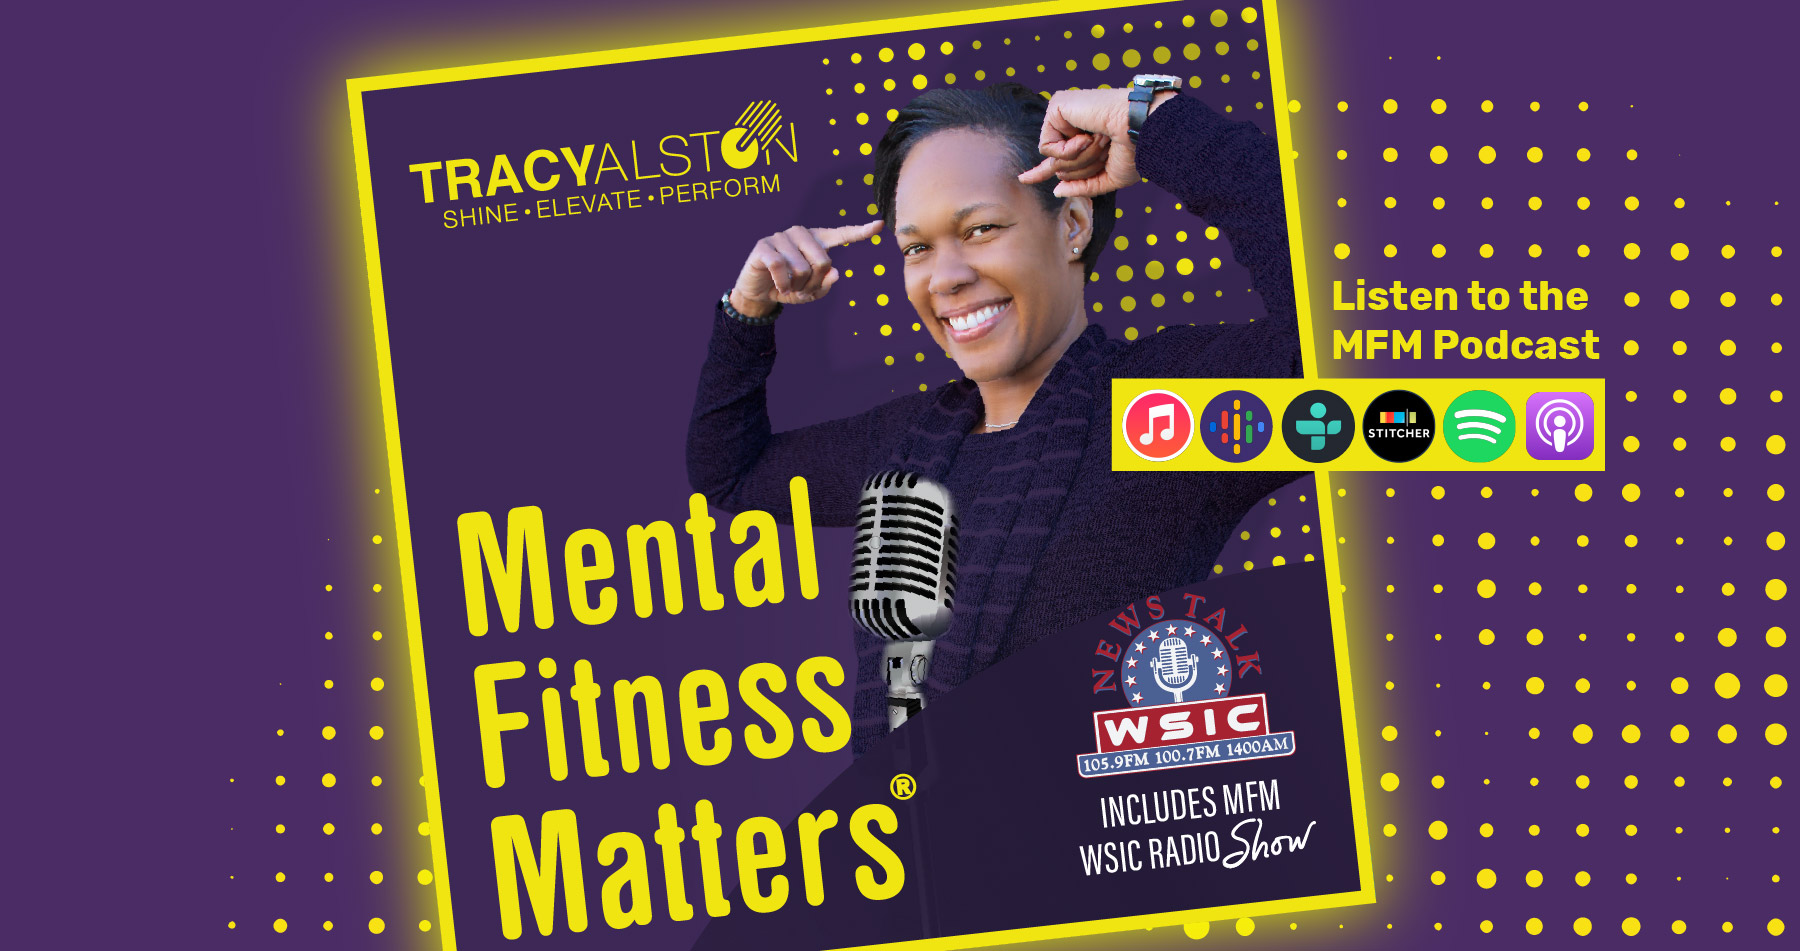 ental-fitness-Matters-Podcasts